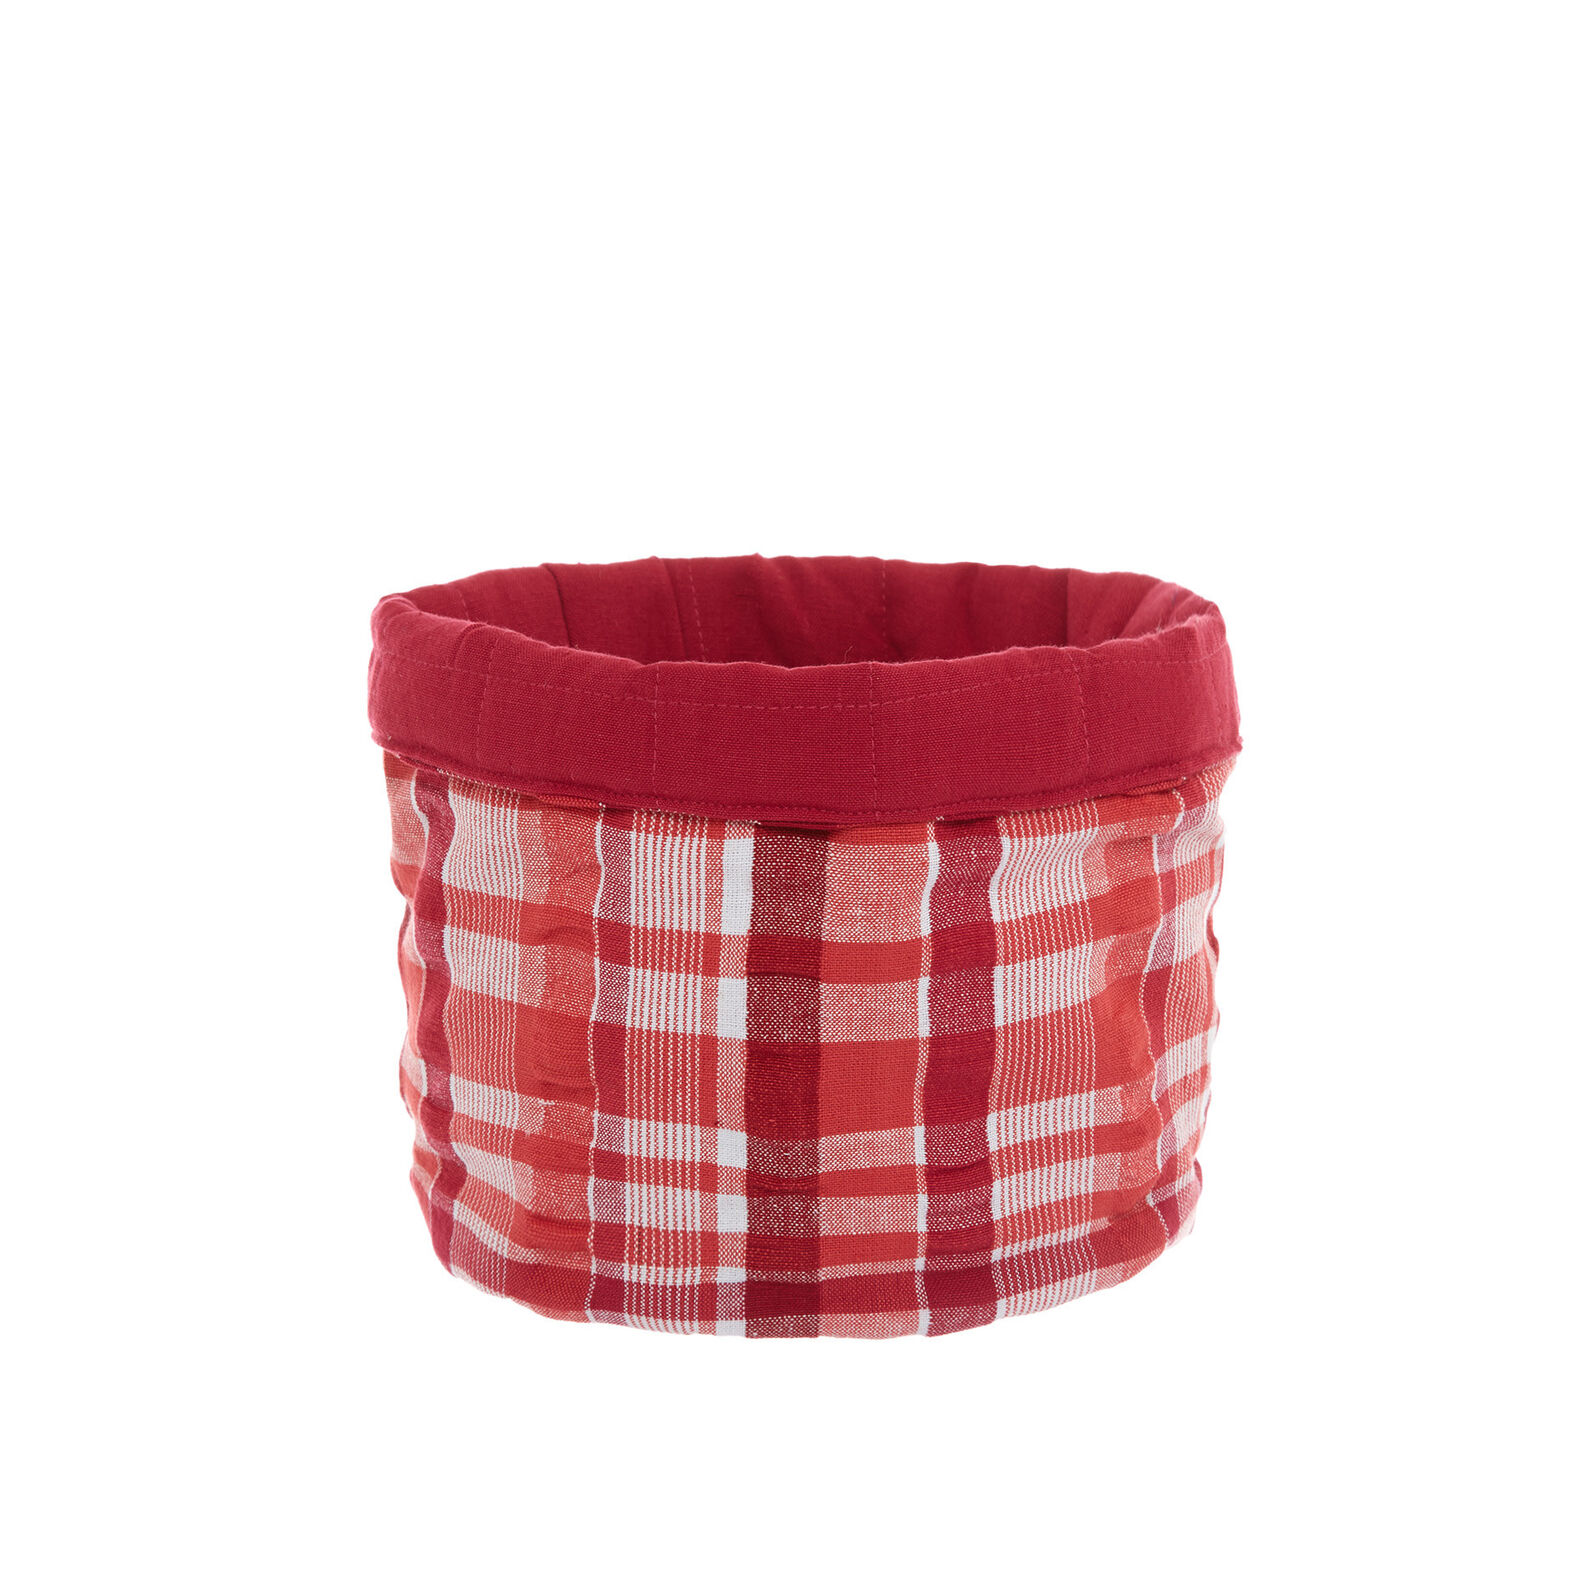 100% cotton basket with check pattern